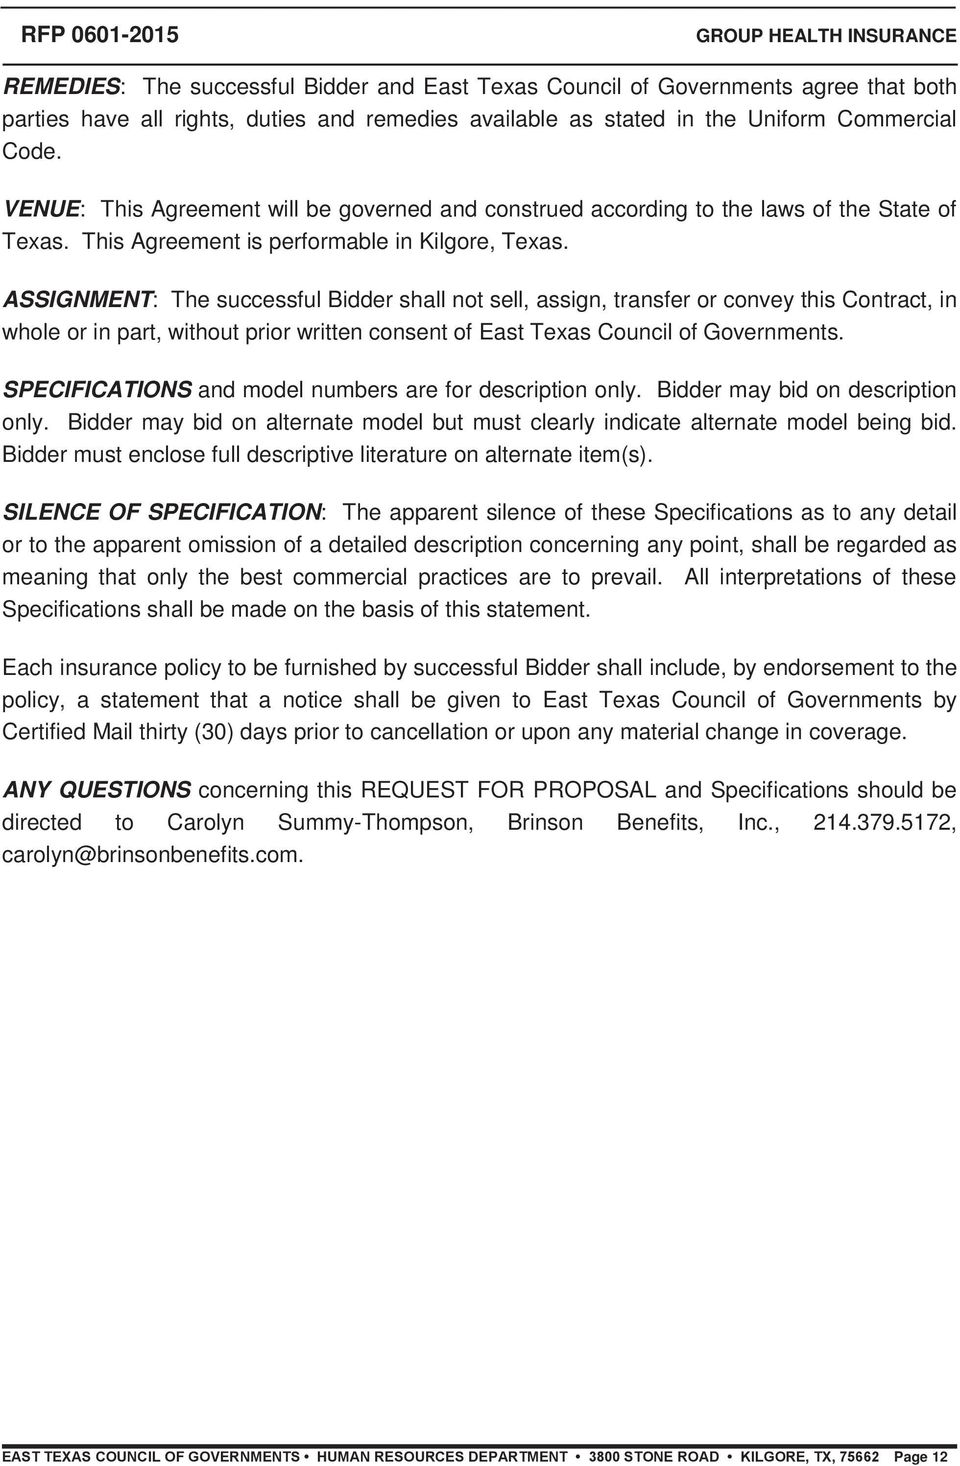 ASSIGNMENT: The successful Bidder shall not sell, assign, transfer or convey this Contract, in whole or in part, without prior written consent of East Texas Council of Governments.